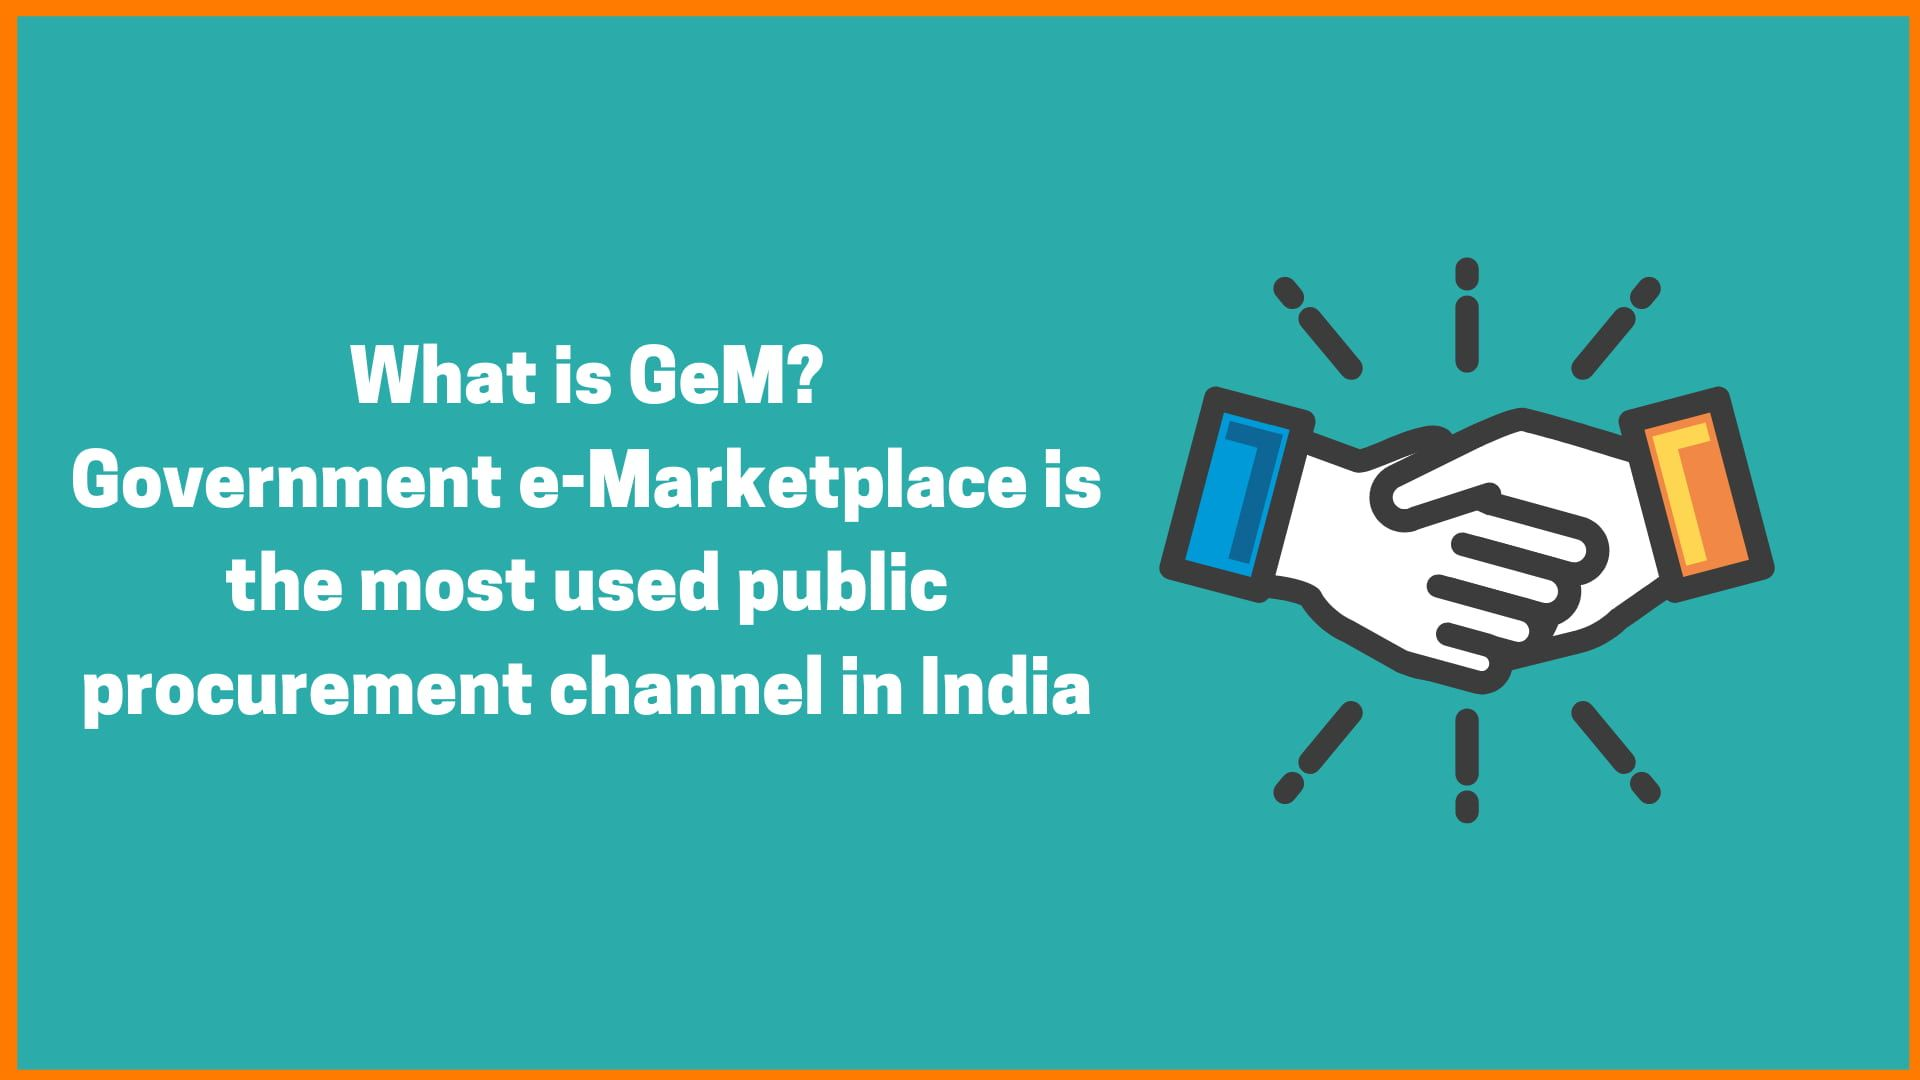 What is GeM?